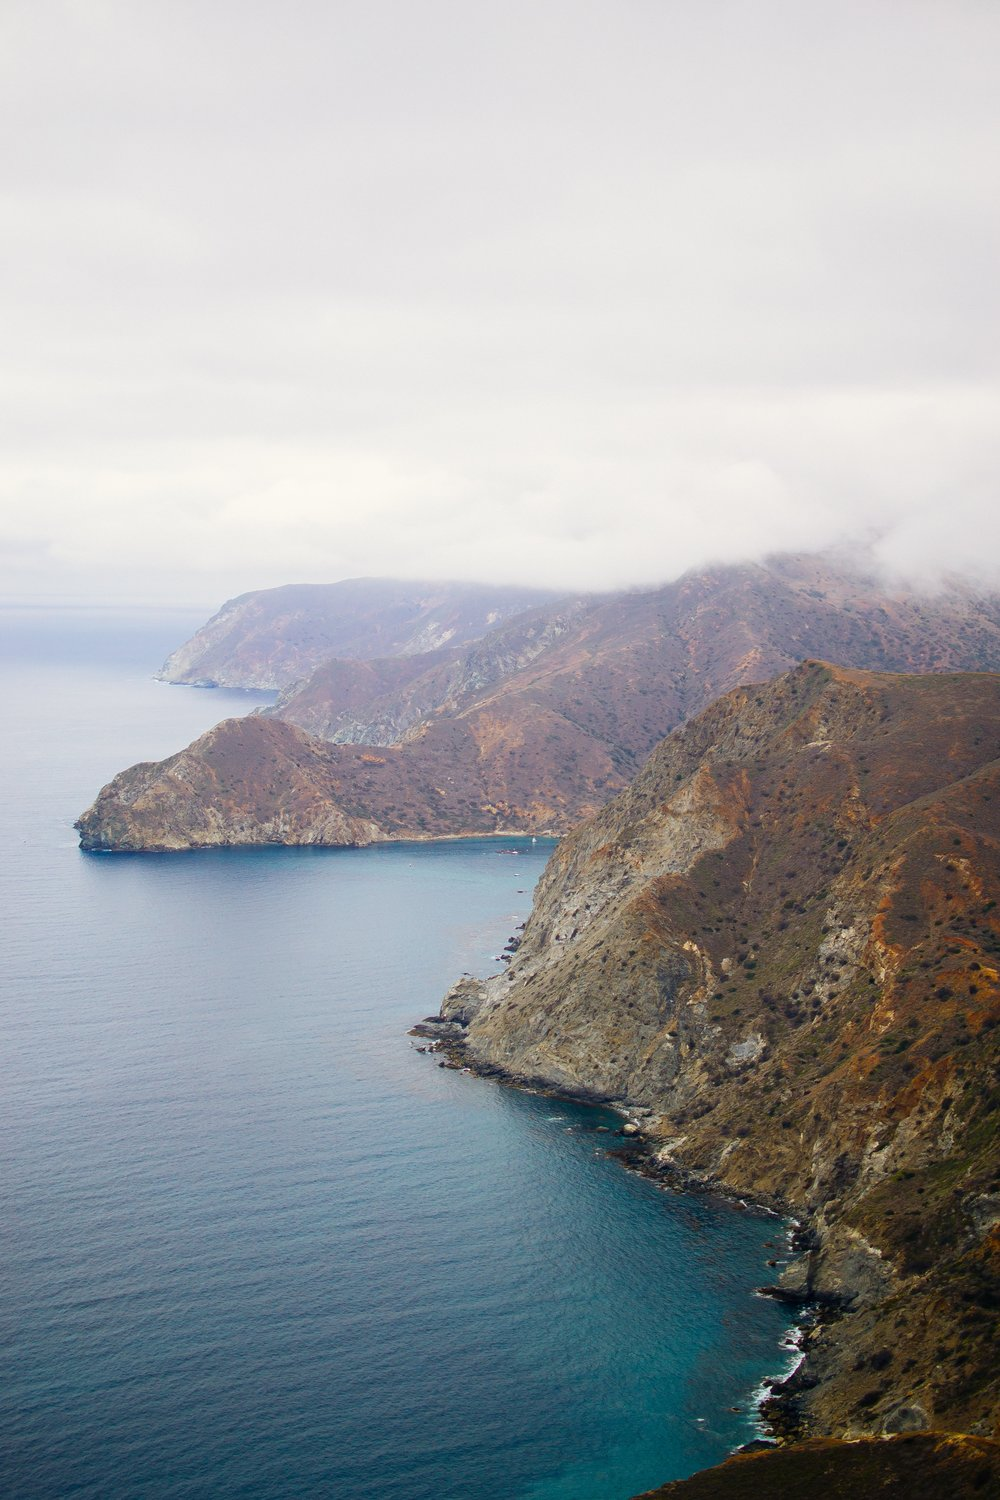 Matt-Sampson-Photography-catalina-island-California-along-the-catalina-coast.jpg